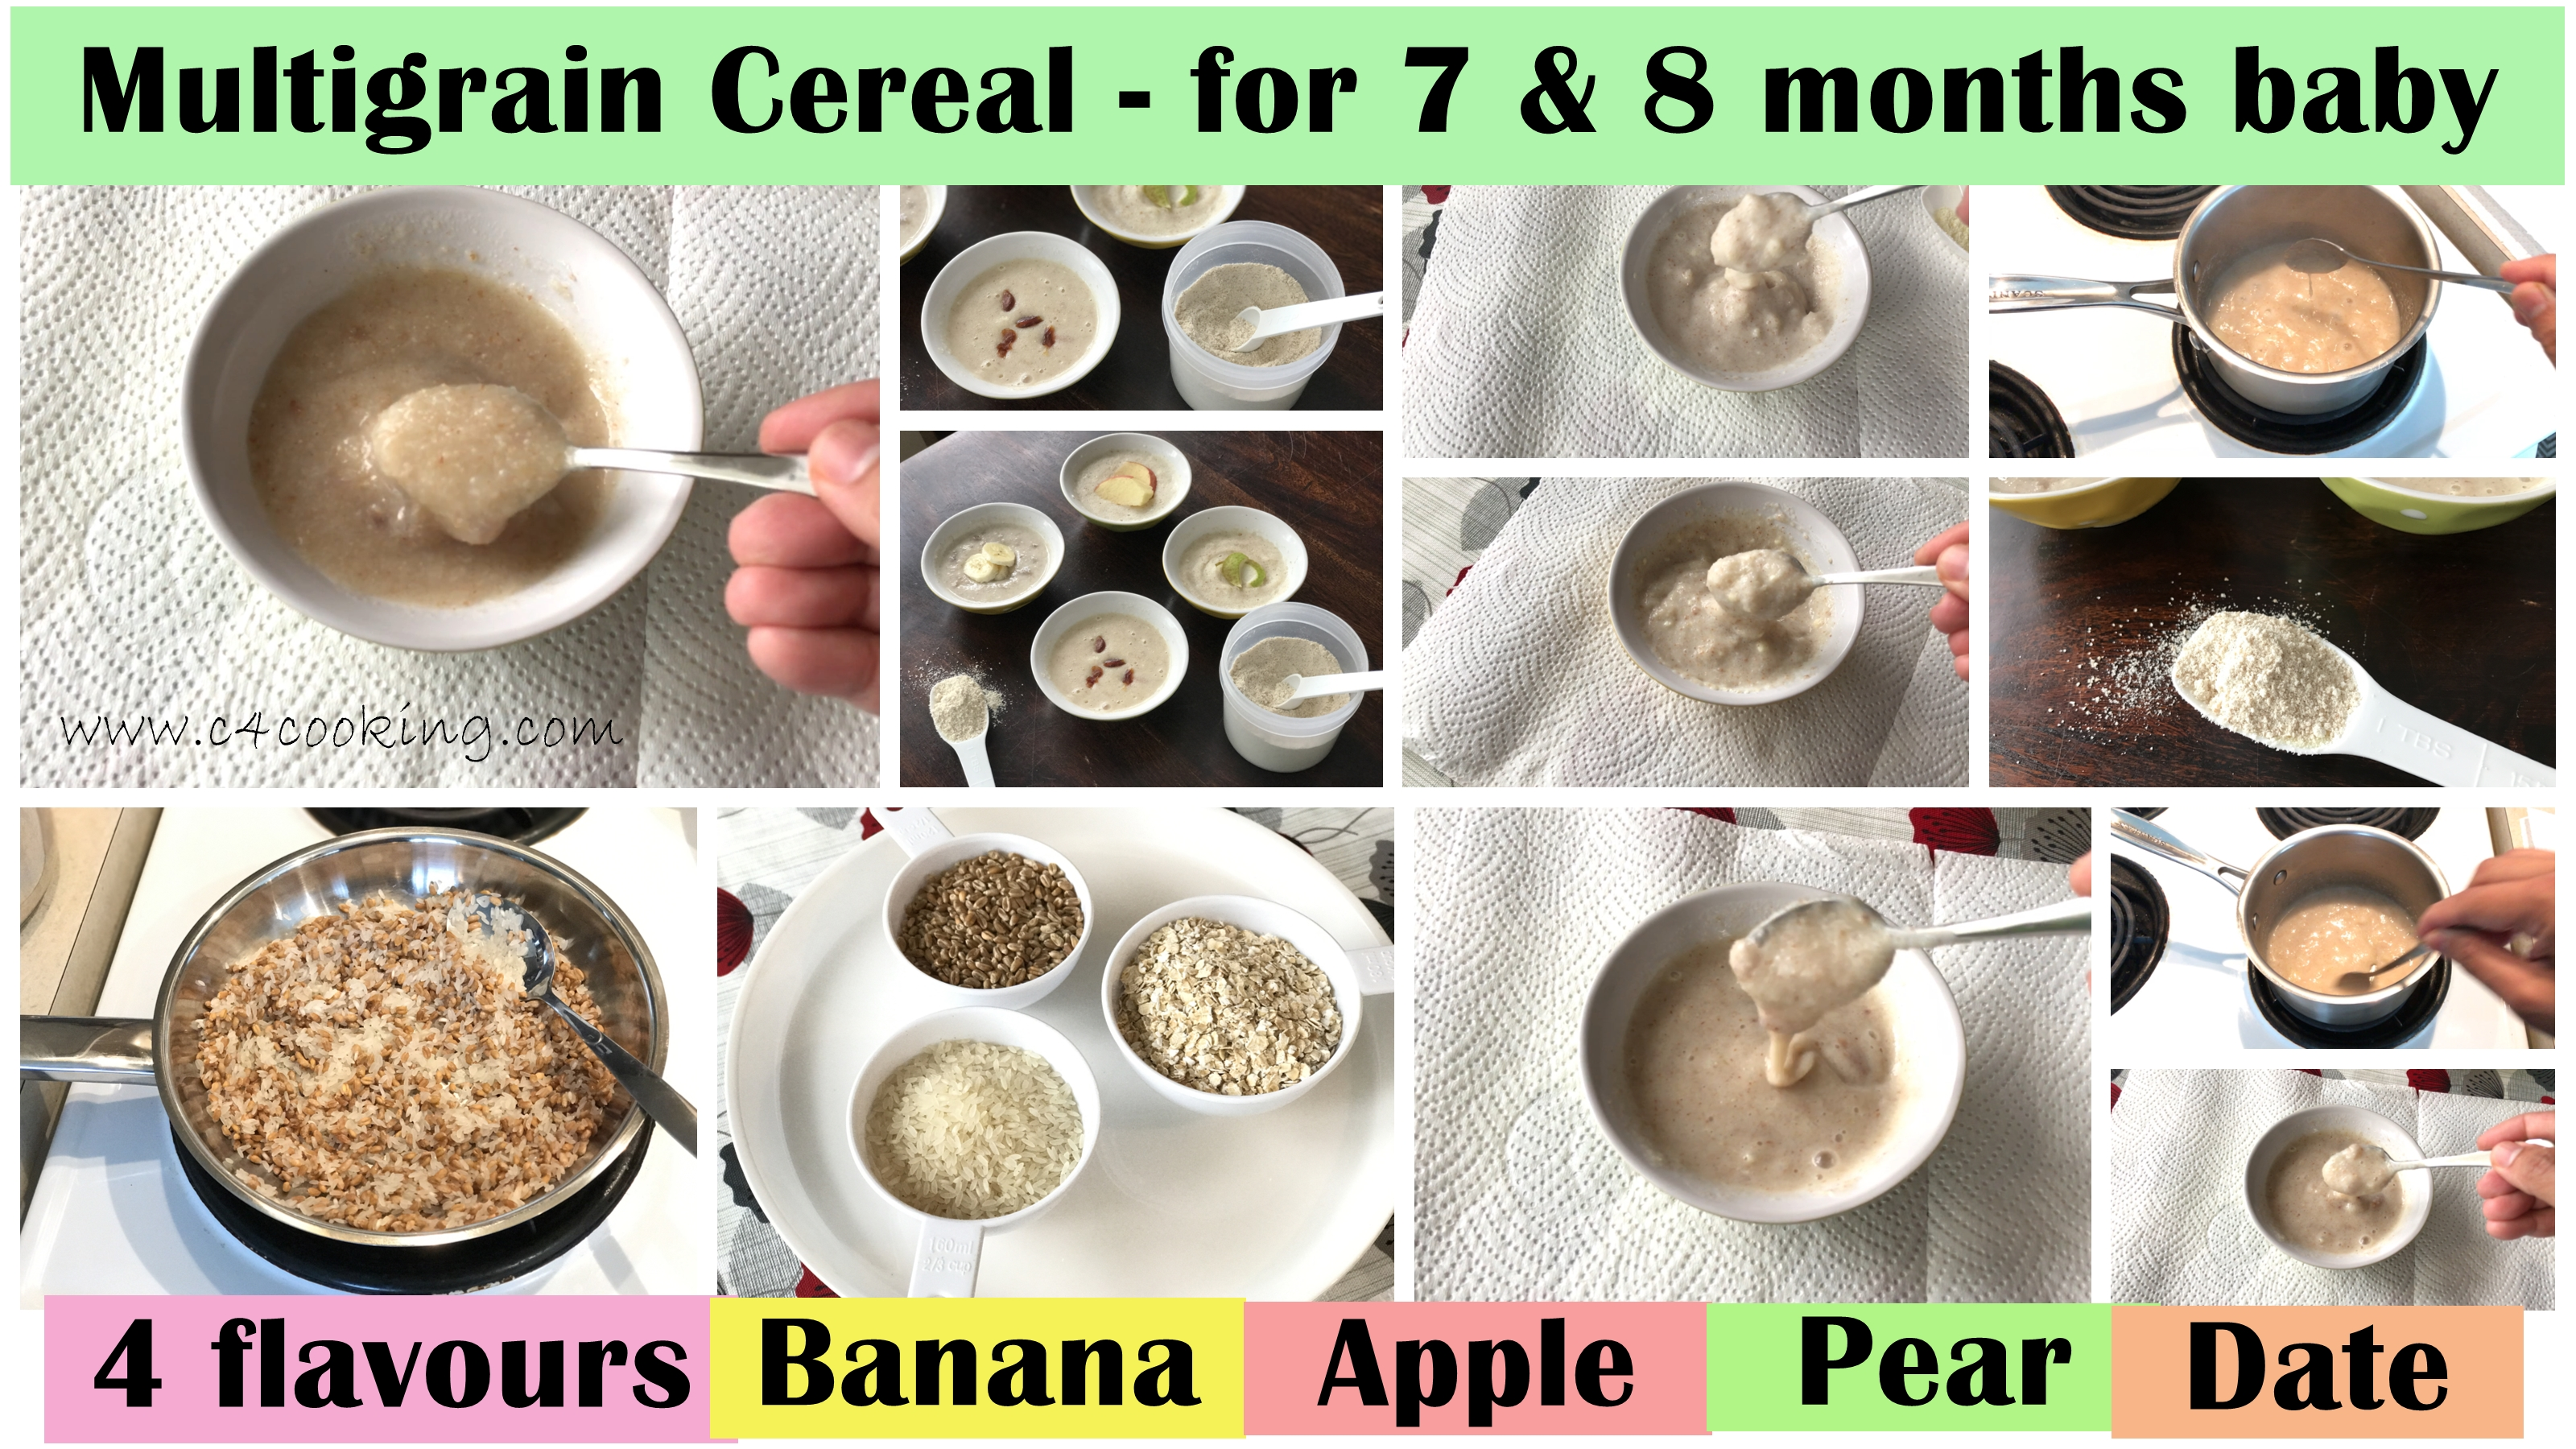 7months baby cereal recipe, muesli for 7months baby